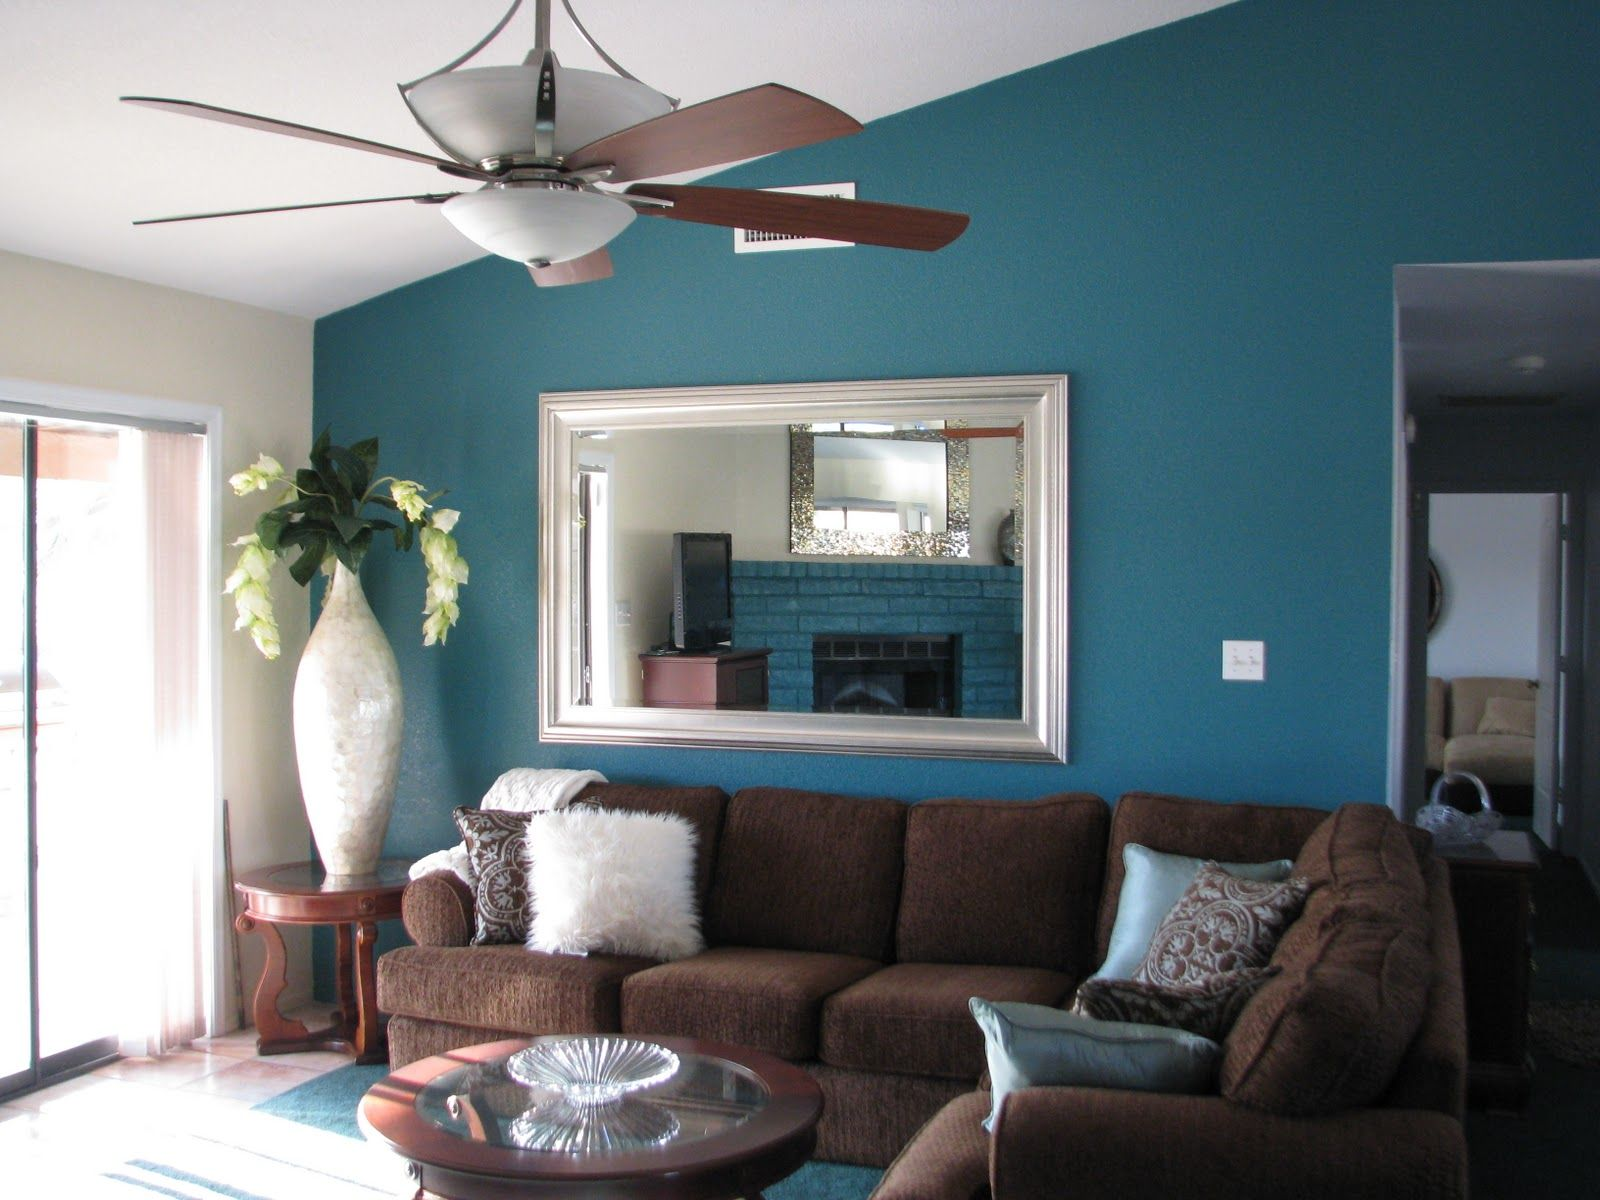 Paint Choices For Living Room Verve Violet Paint Color Sw 6979 By Sherwin Williams View